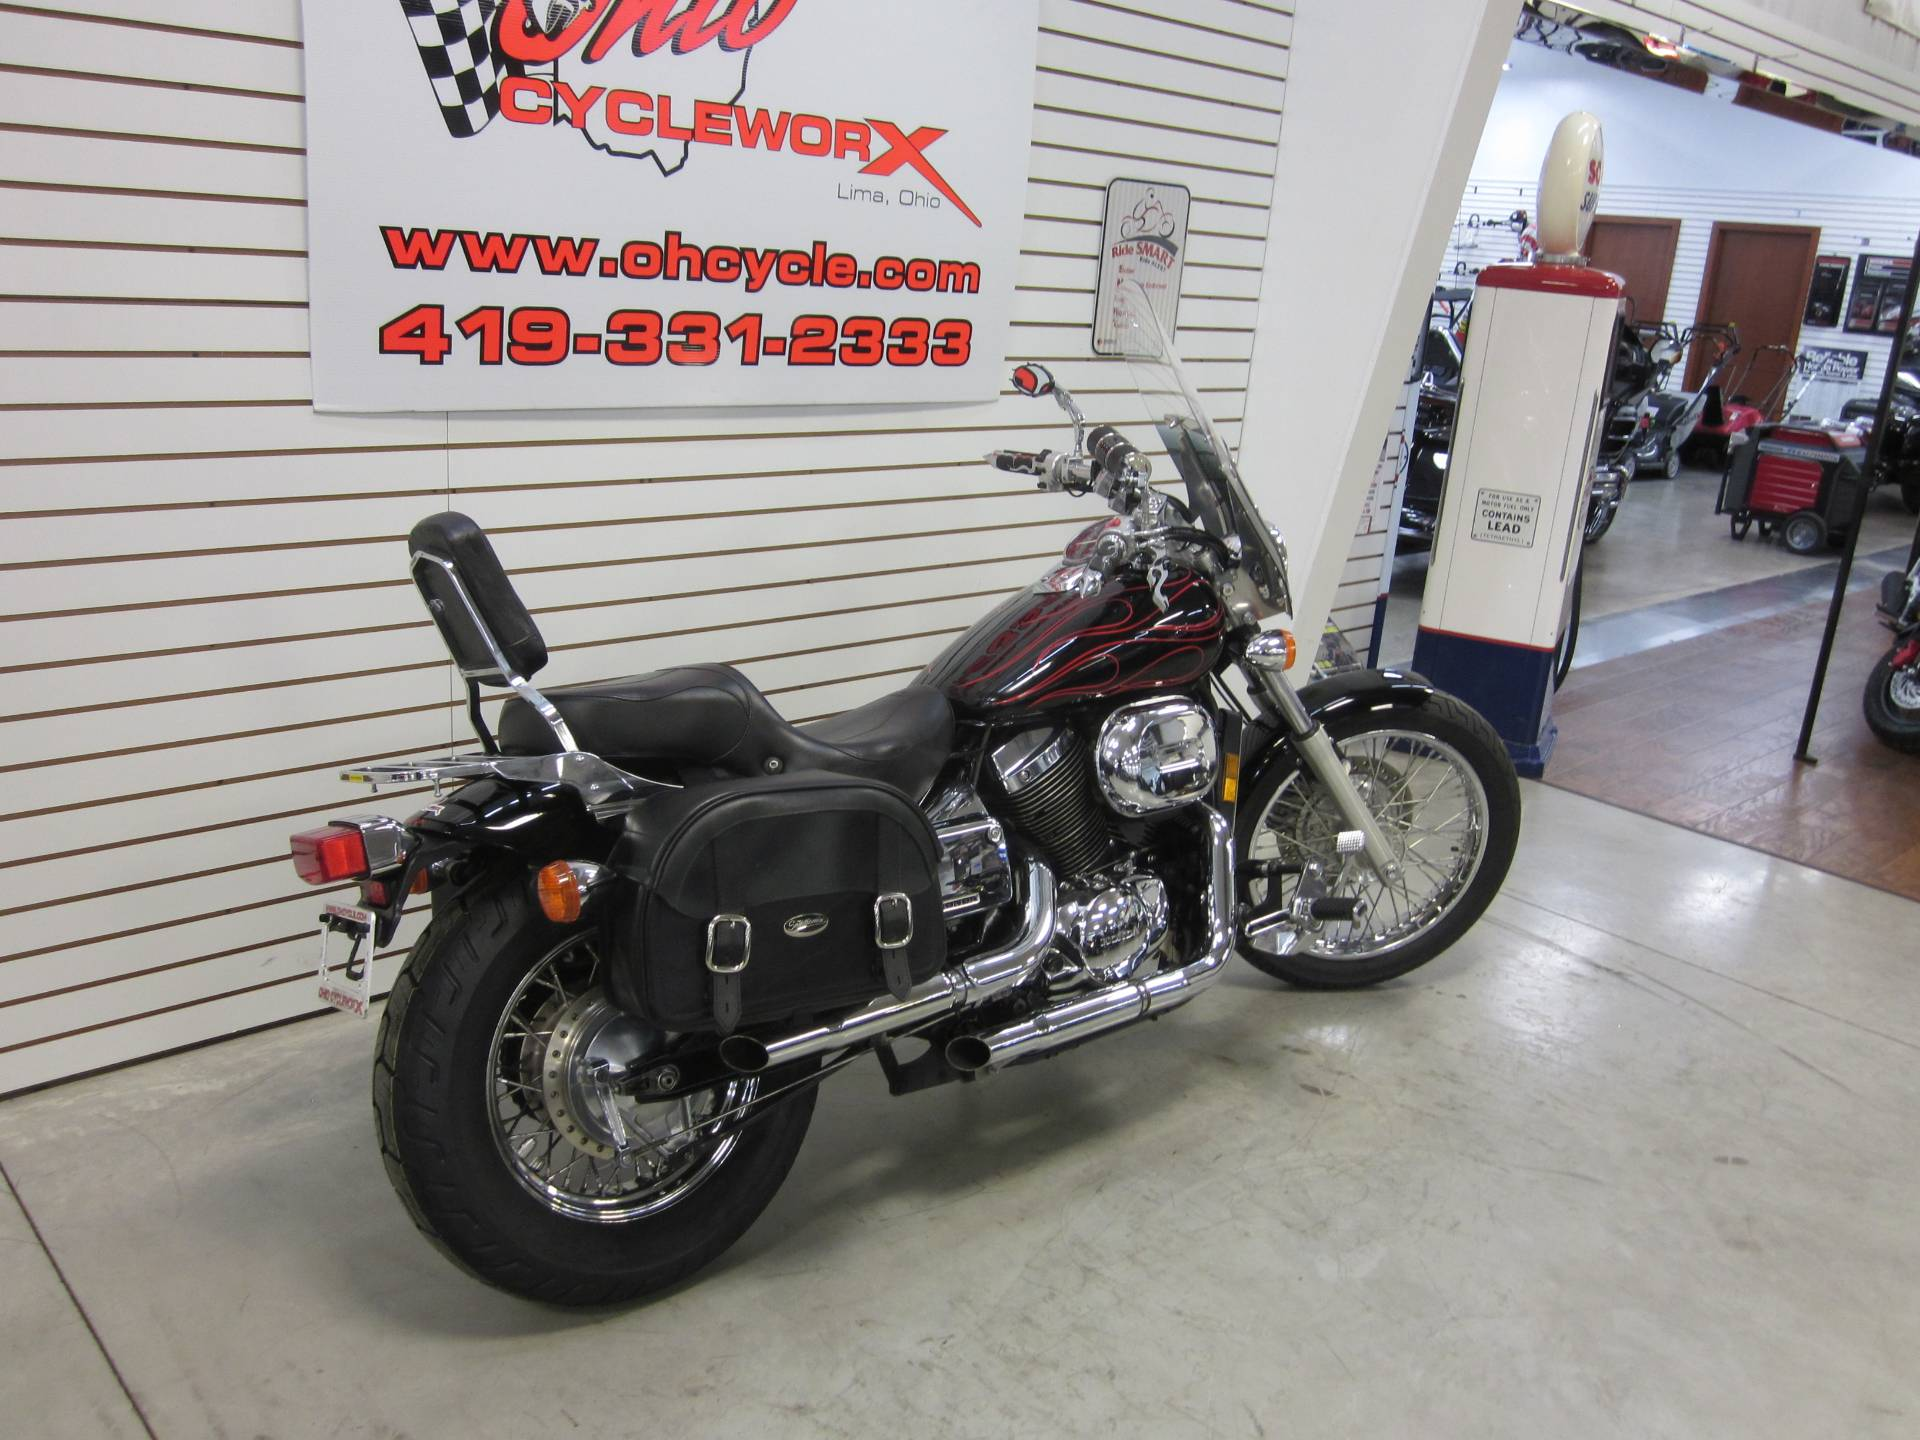 2007 Honda Spirit 750 in Lima, Ohio